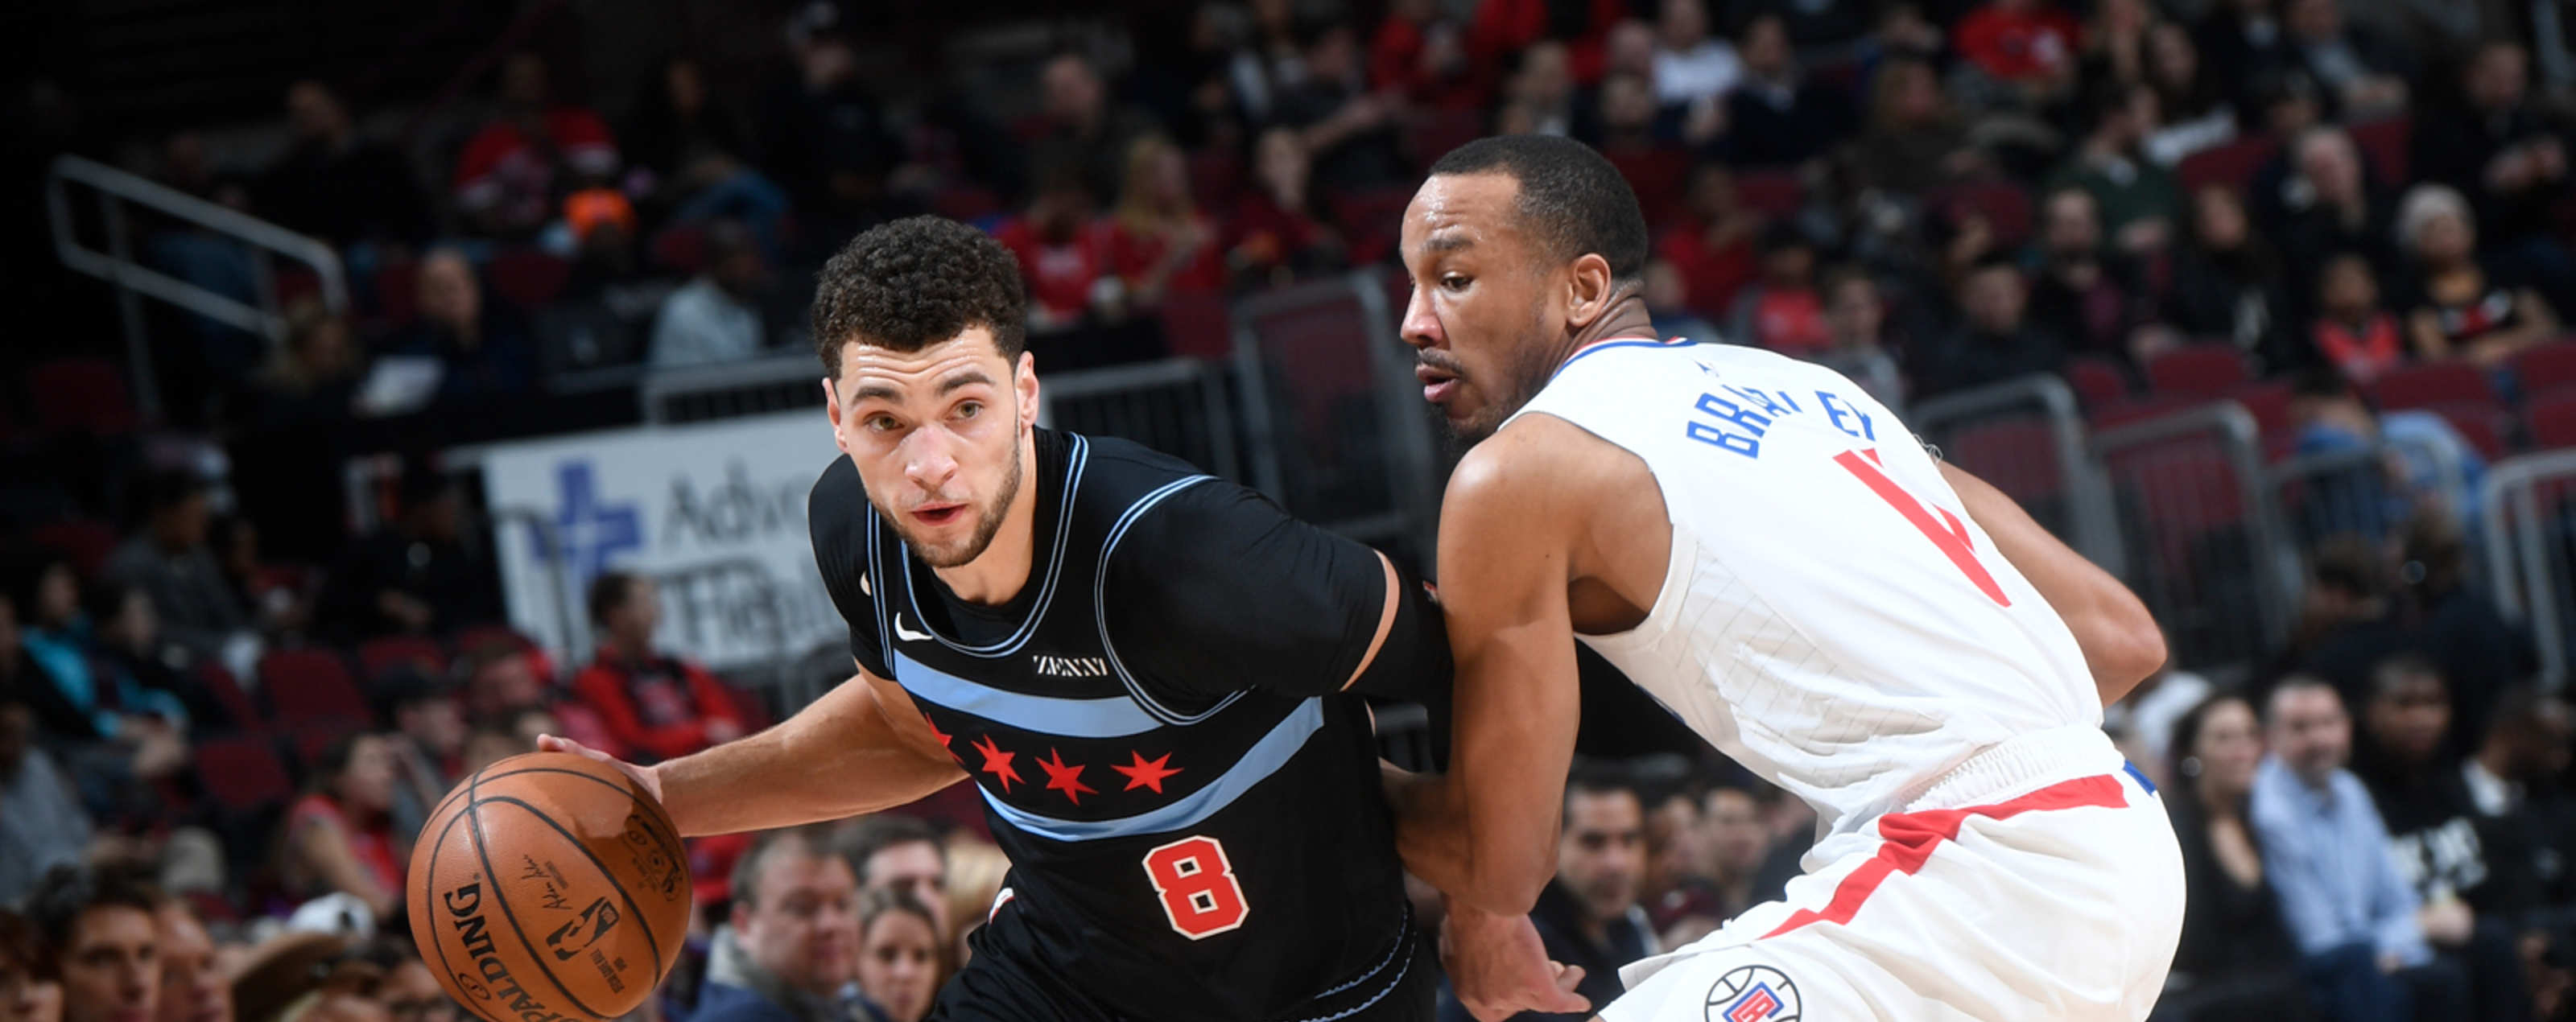 Zach LaVine dribbles the ball against the Los Angeles Lakers.